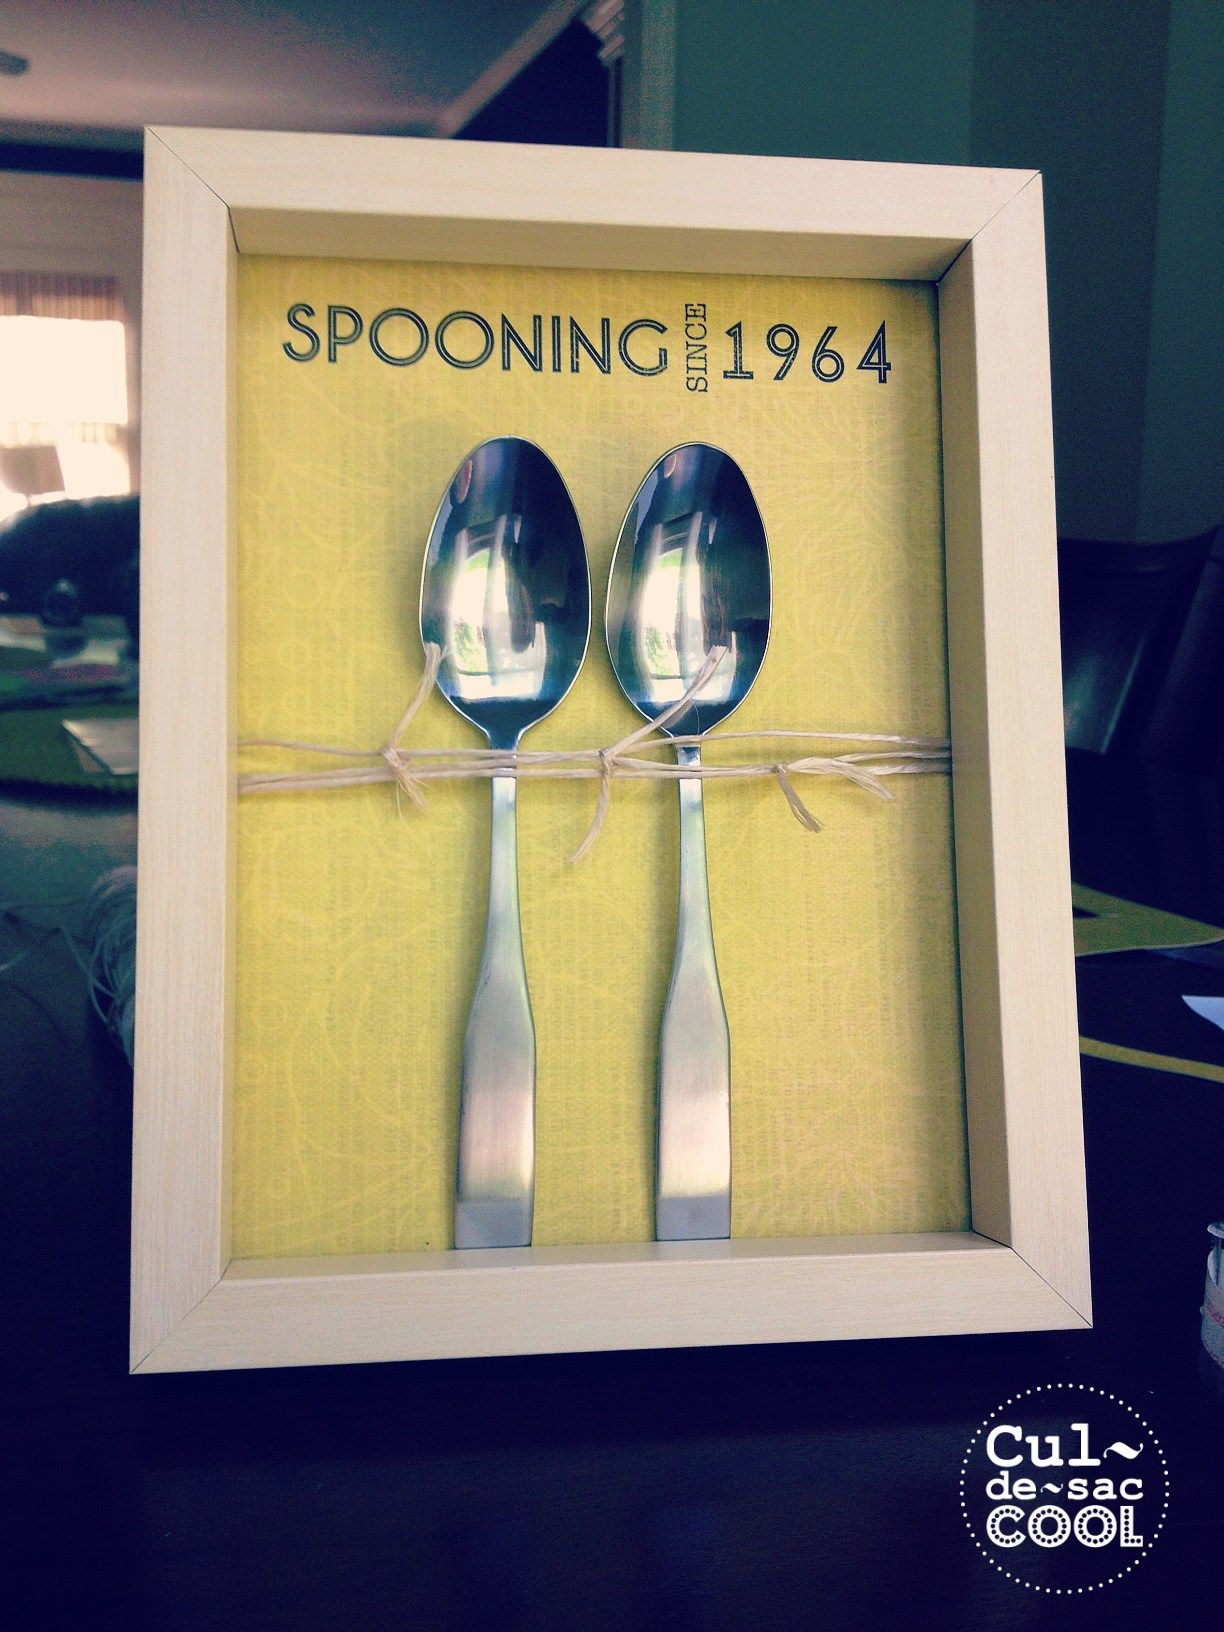 Diy Spooning Anniversaryweddingvalentines Day Gift 7 Craft